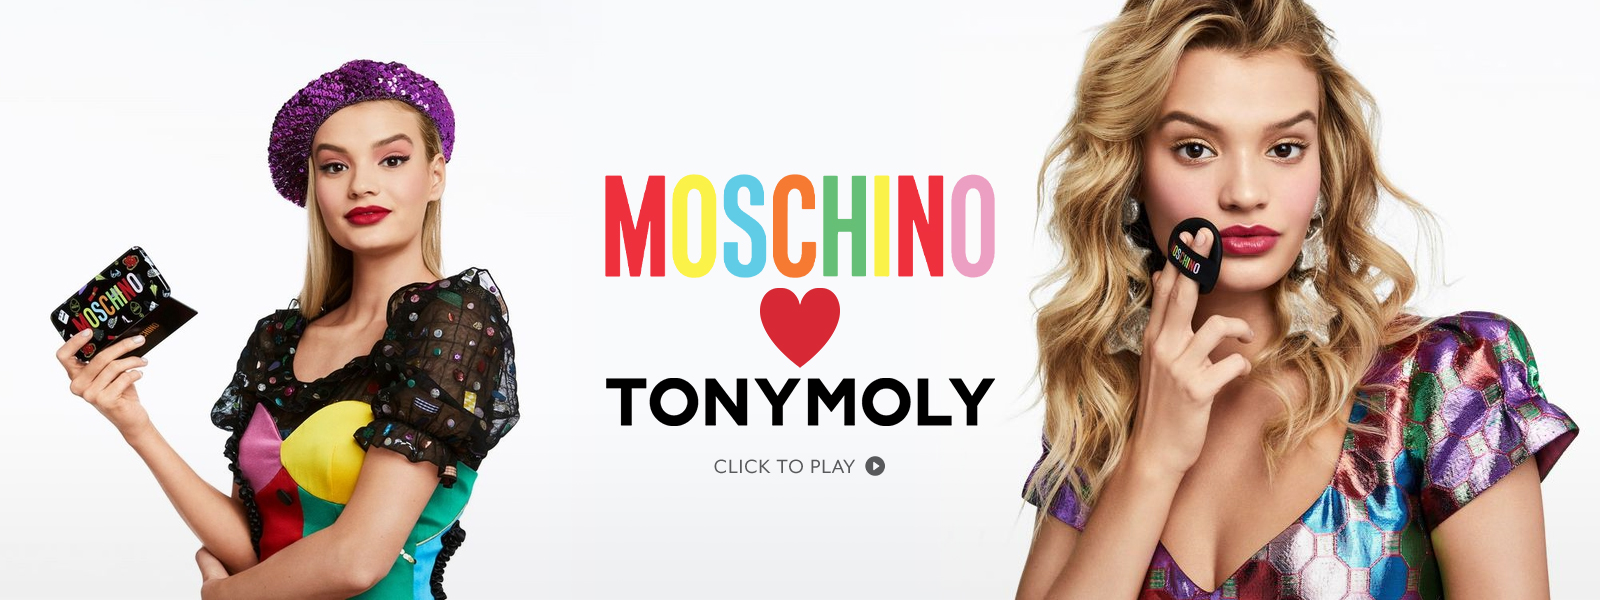 Tony Moly: Moschino Collaboration Banner